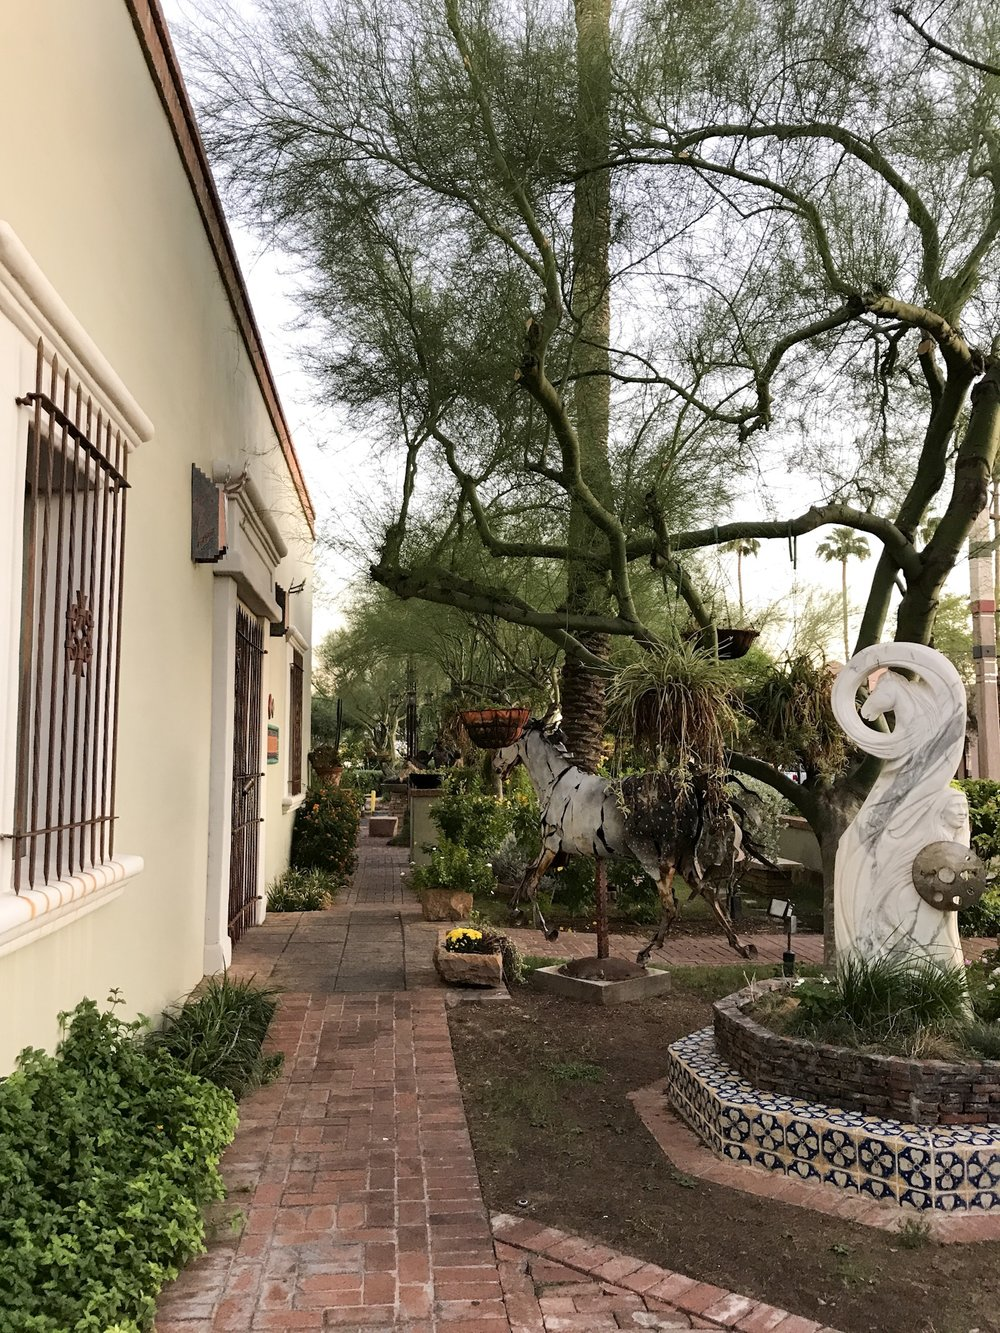 Old Town Scottsdale, Arizona | Photo by Erika Beach WLPW